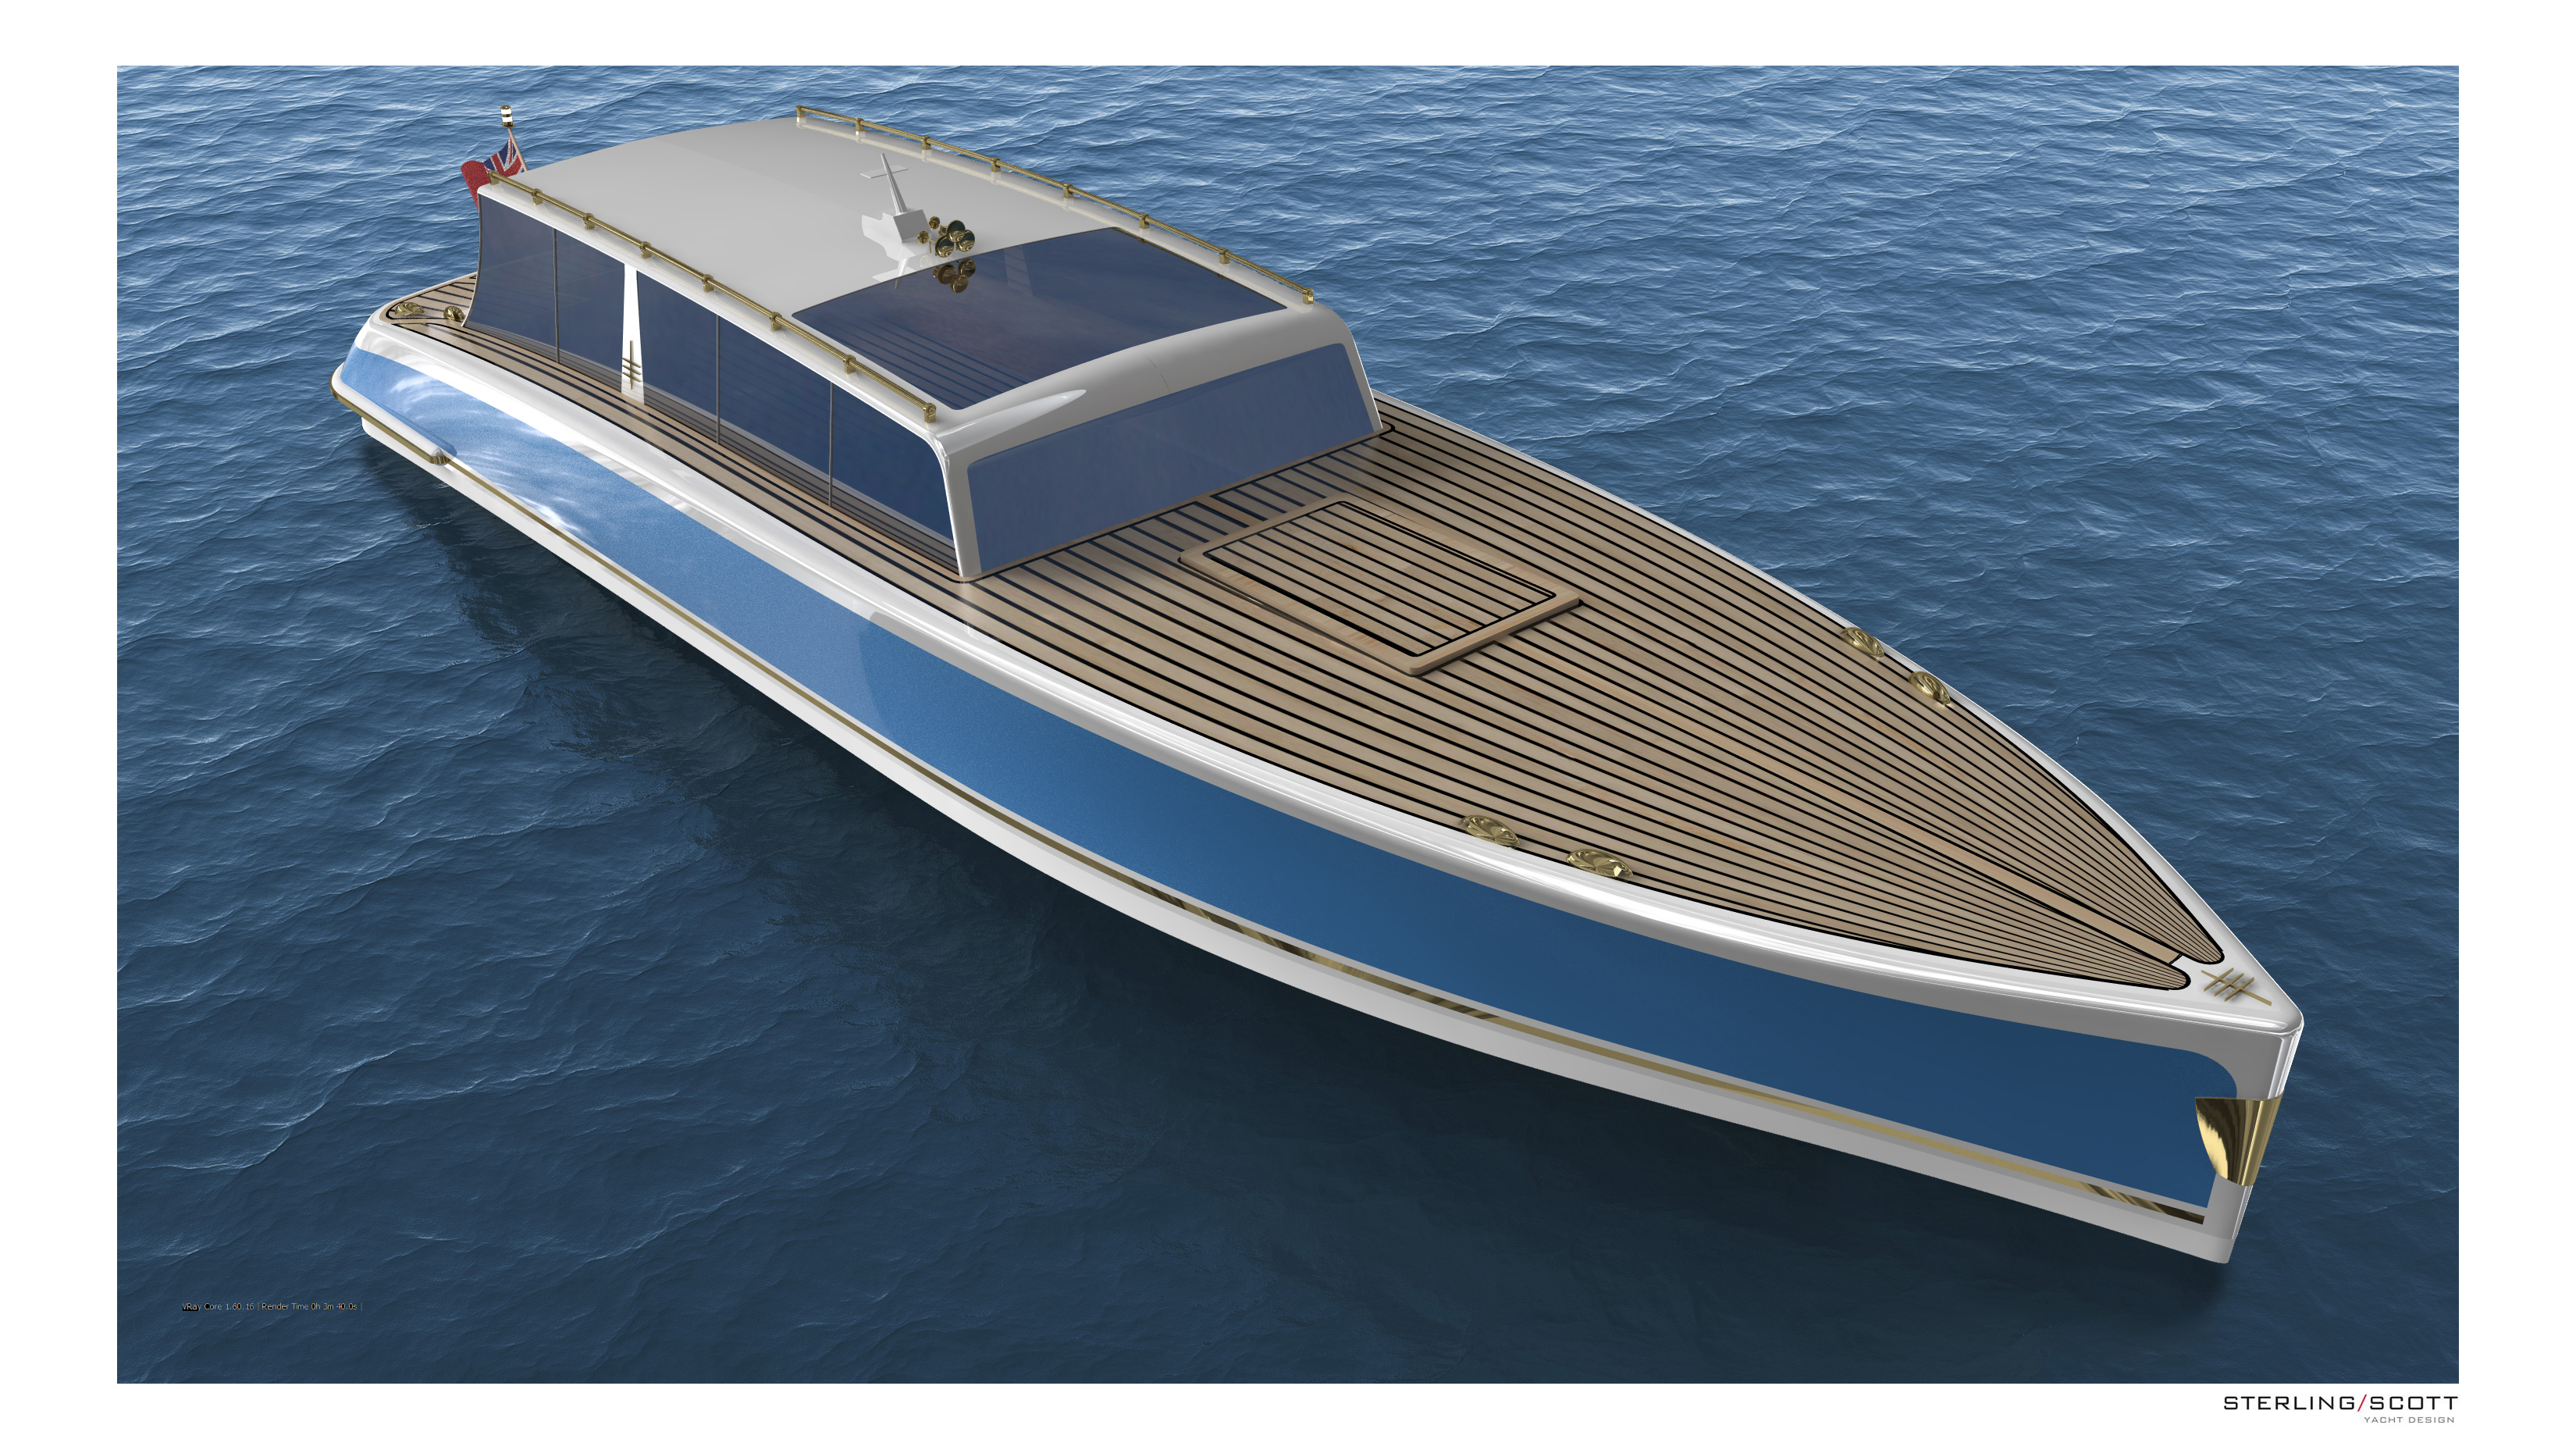 50 Ft_ Yachts http://www.charterworld.com/news/sterling-scott-designed-limo-tender-sports-yacht-tender/sterling-scott-50-foot-yacht-tender